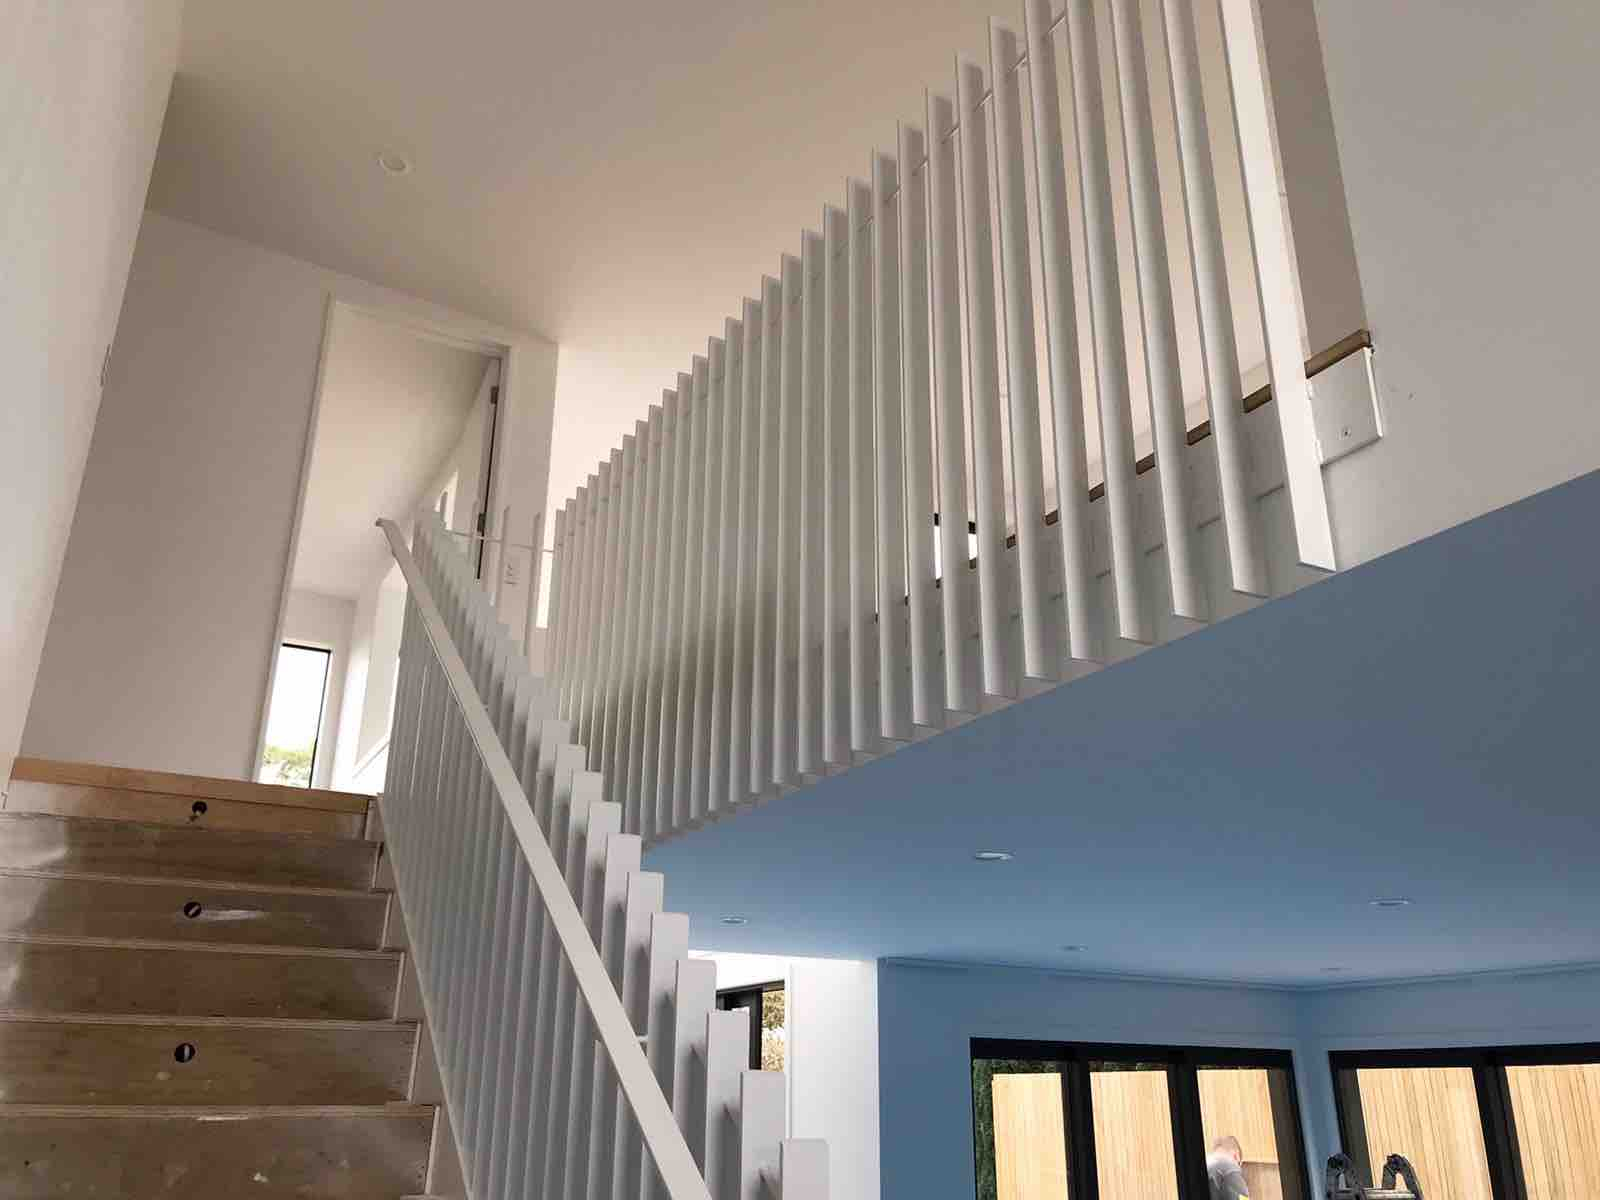 Stair renovation upgraded with new steel handrail